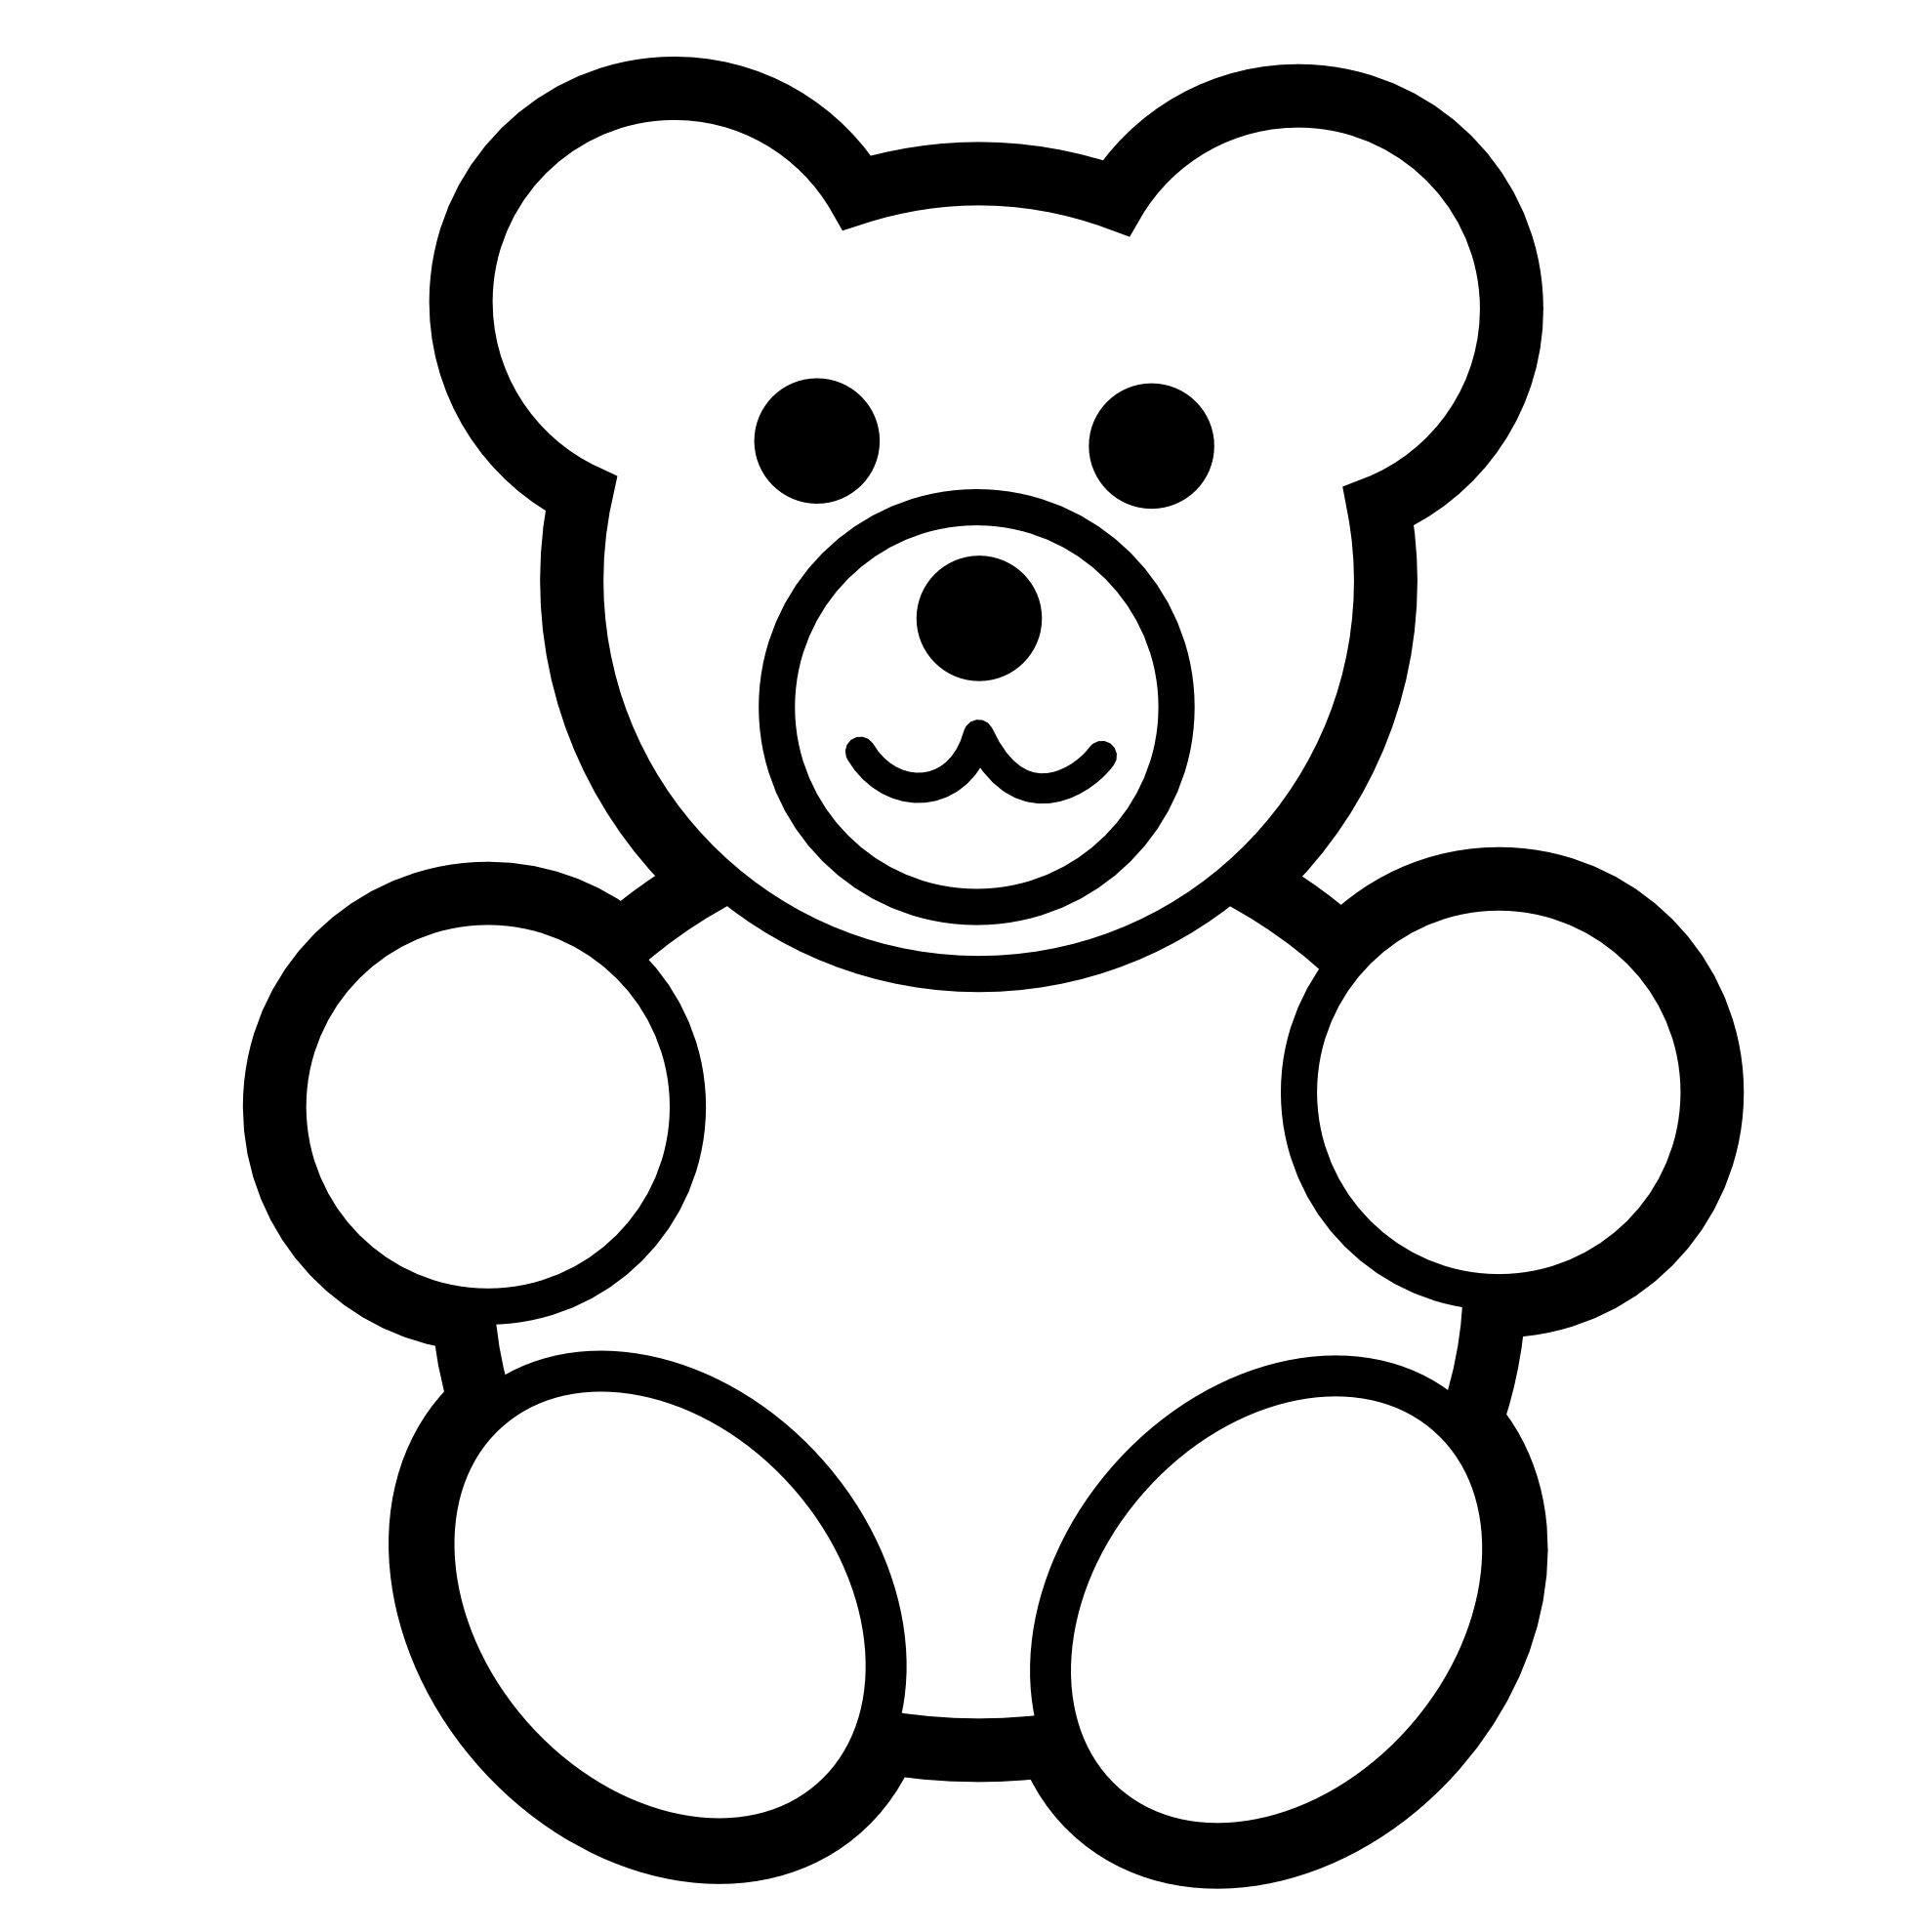 1979x1979 Teddy Bear Outline Clipart Free Clipart Images 2